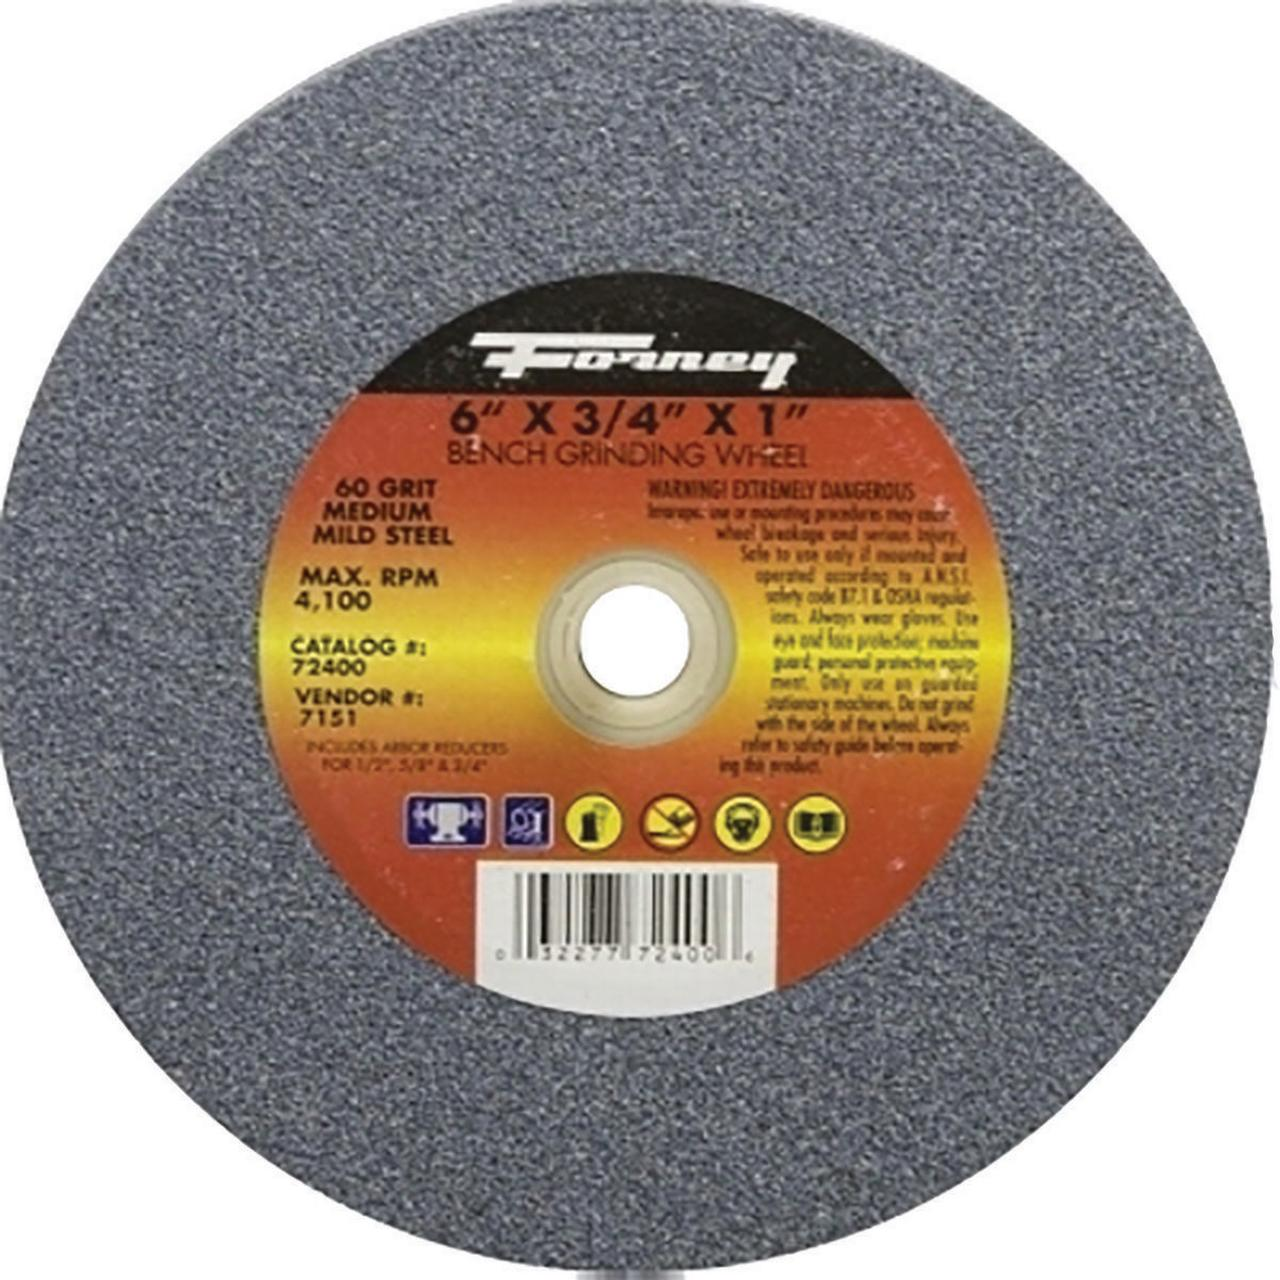 Forney Industries 72401 Type 1 Circular Shape Flat Grinding Wheel, 6 in Dia x 3/4 in T, 36 Grit, 1 i